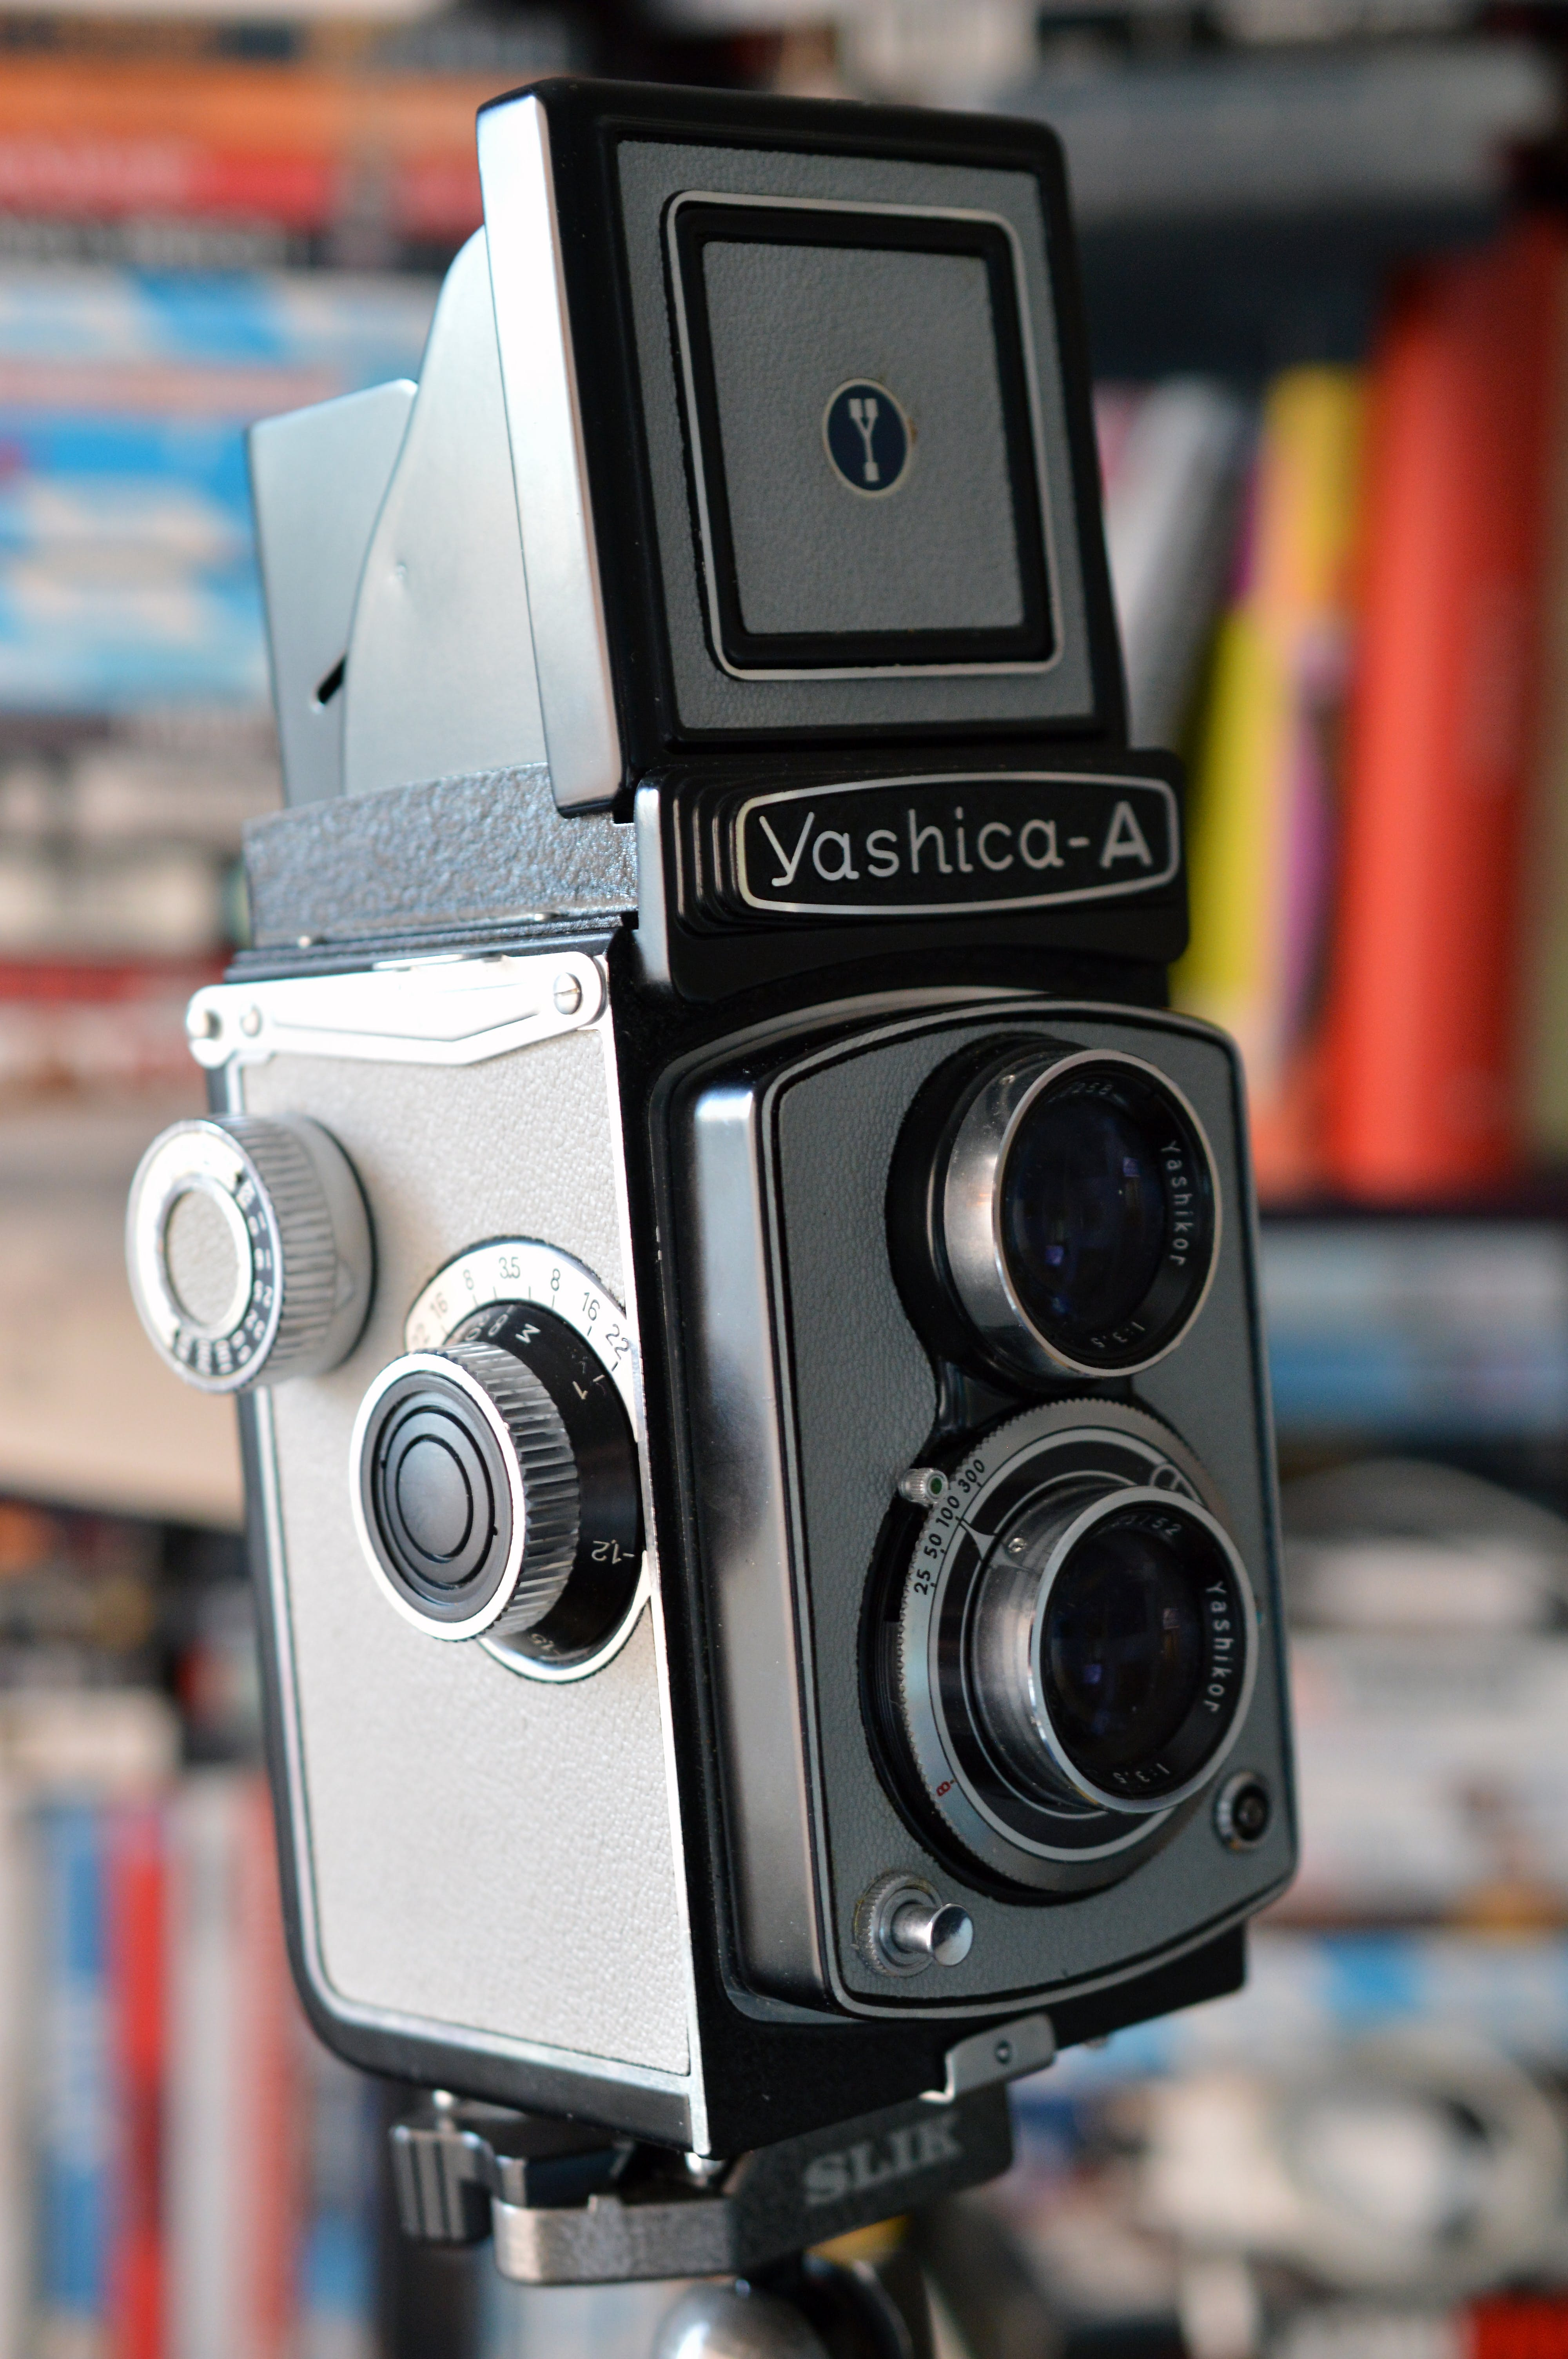 Grey And Black Yashica a Camera   Stock Photo Image 4000x6016